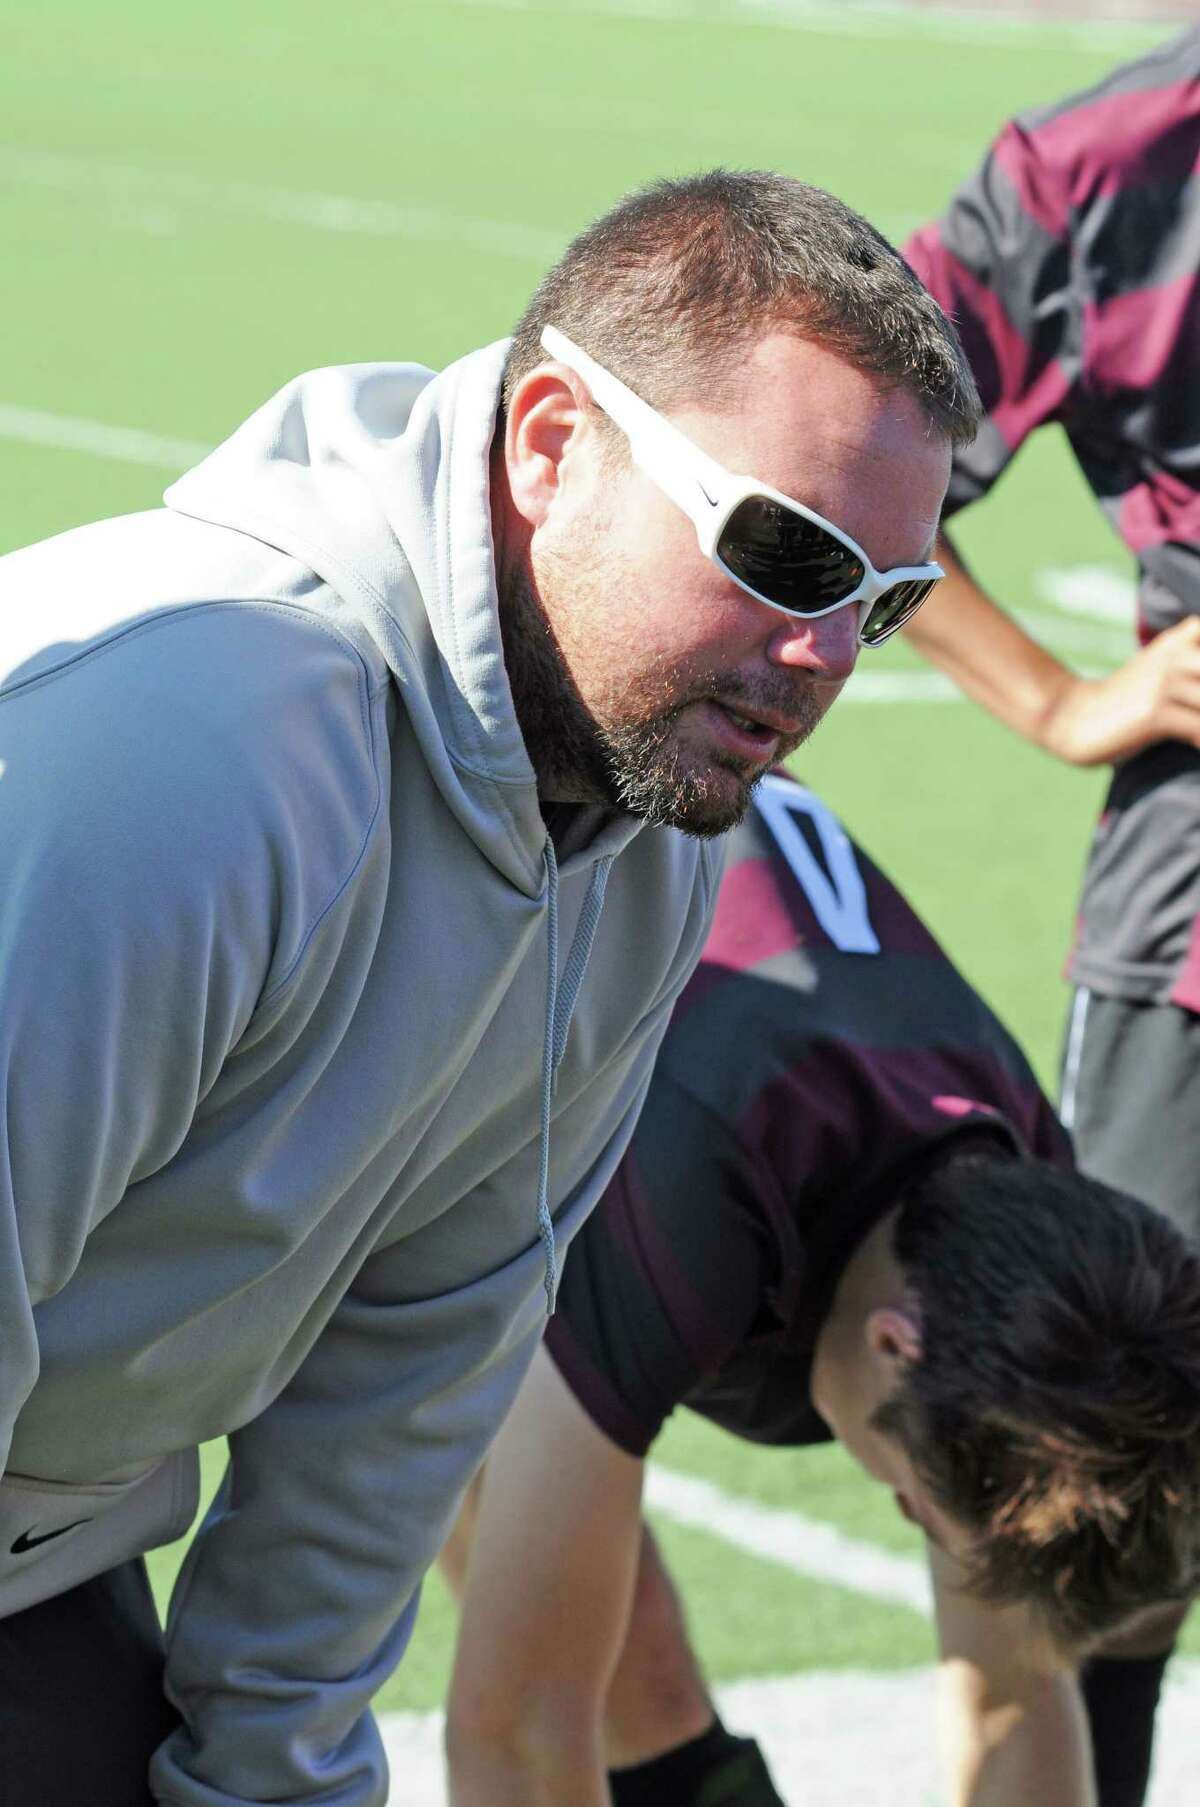 Pearland boys soccer head coach Tom Jones is in his seventh season with the Oilers in 2013. Pearland boys soccer defeated Elkins 2-0 during the Pasadena ISD Tournament on 1-19-13 in a match played at The Rig in Pearland.